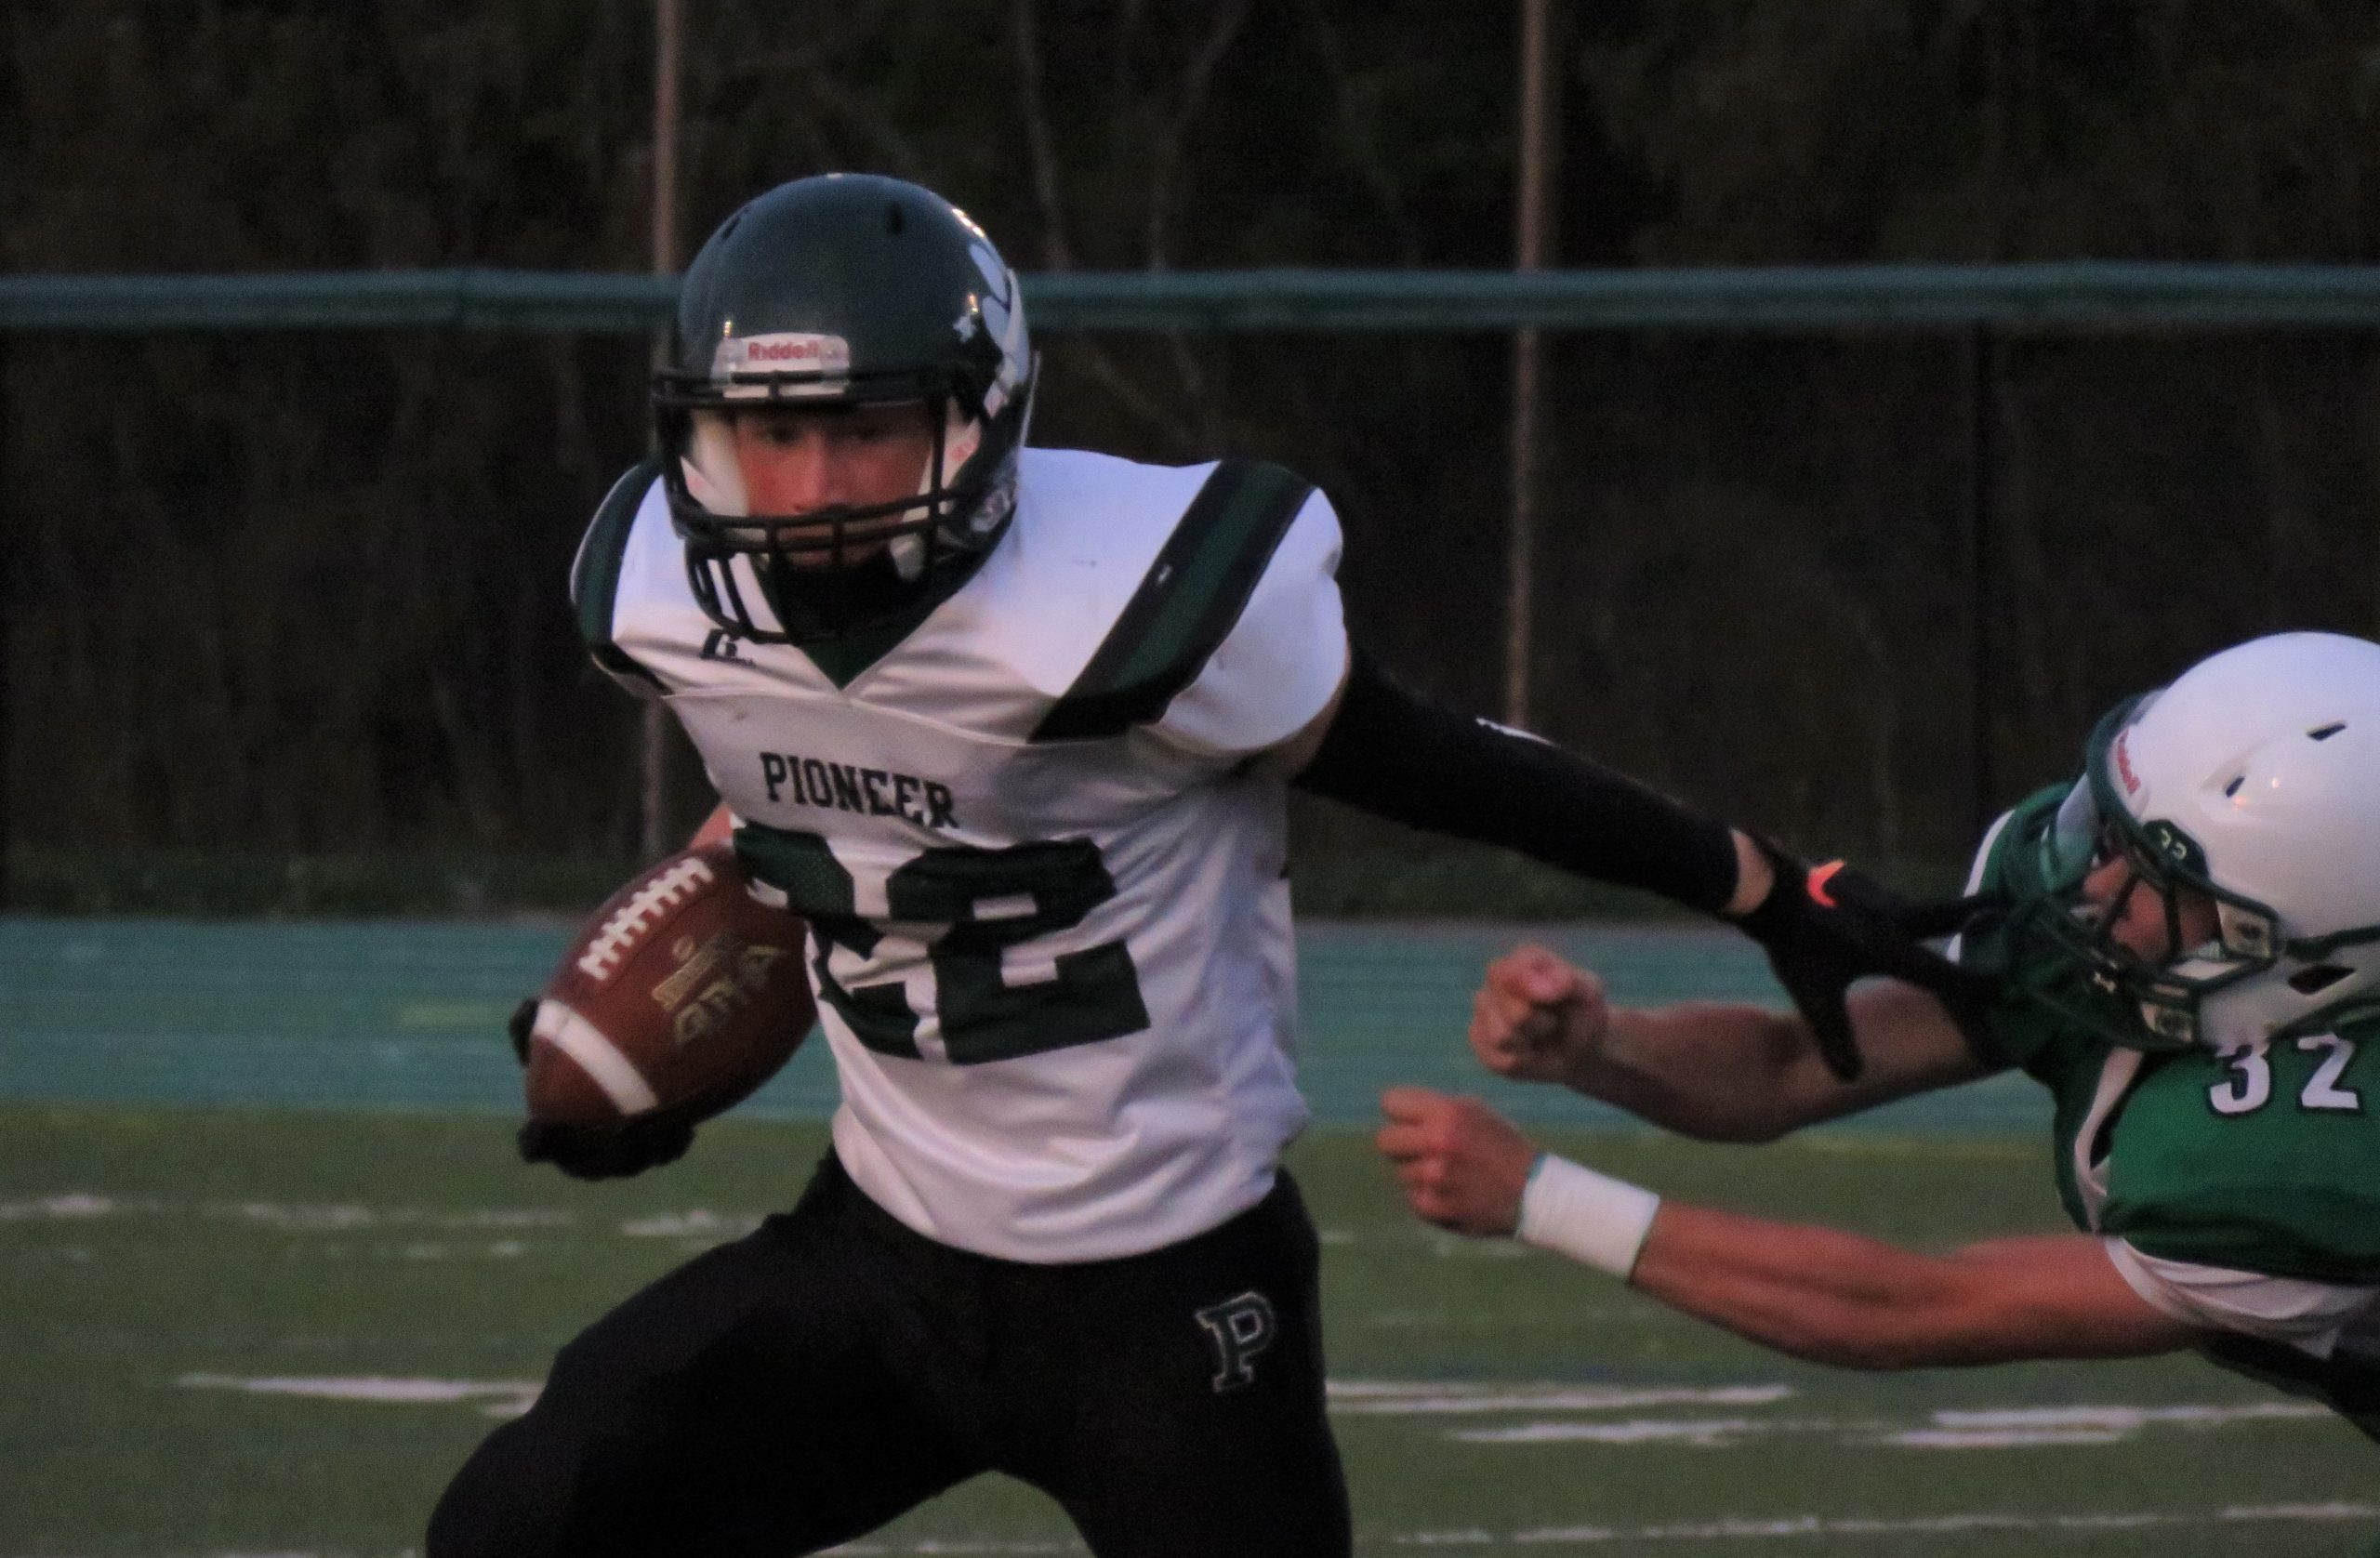 Pioneer Stays Undefeated With Win at Lew-Port